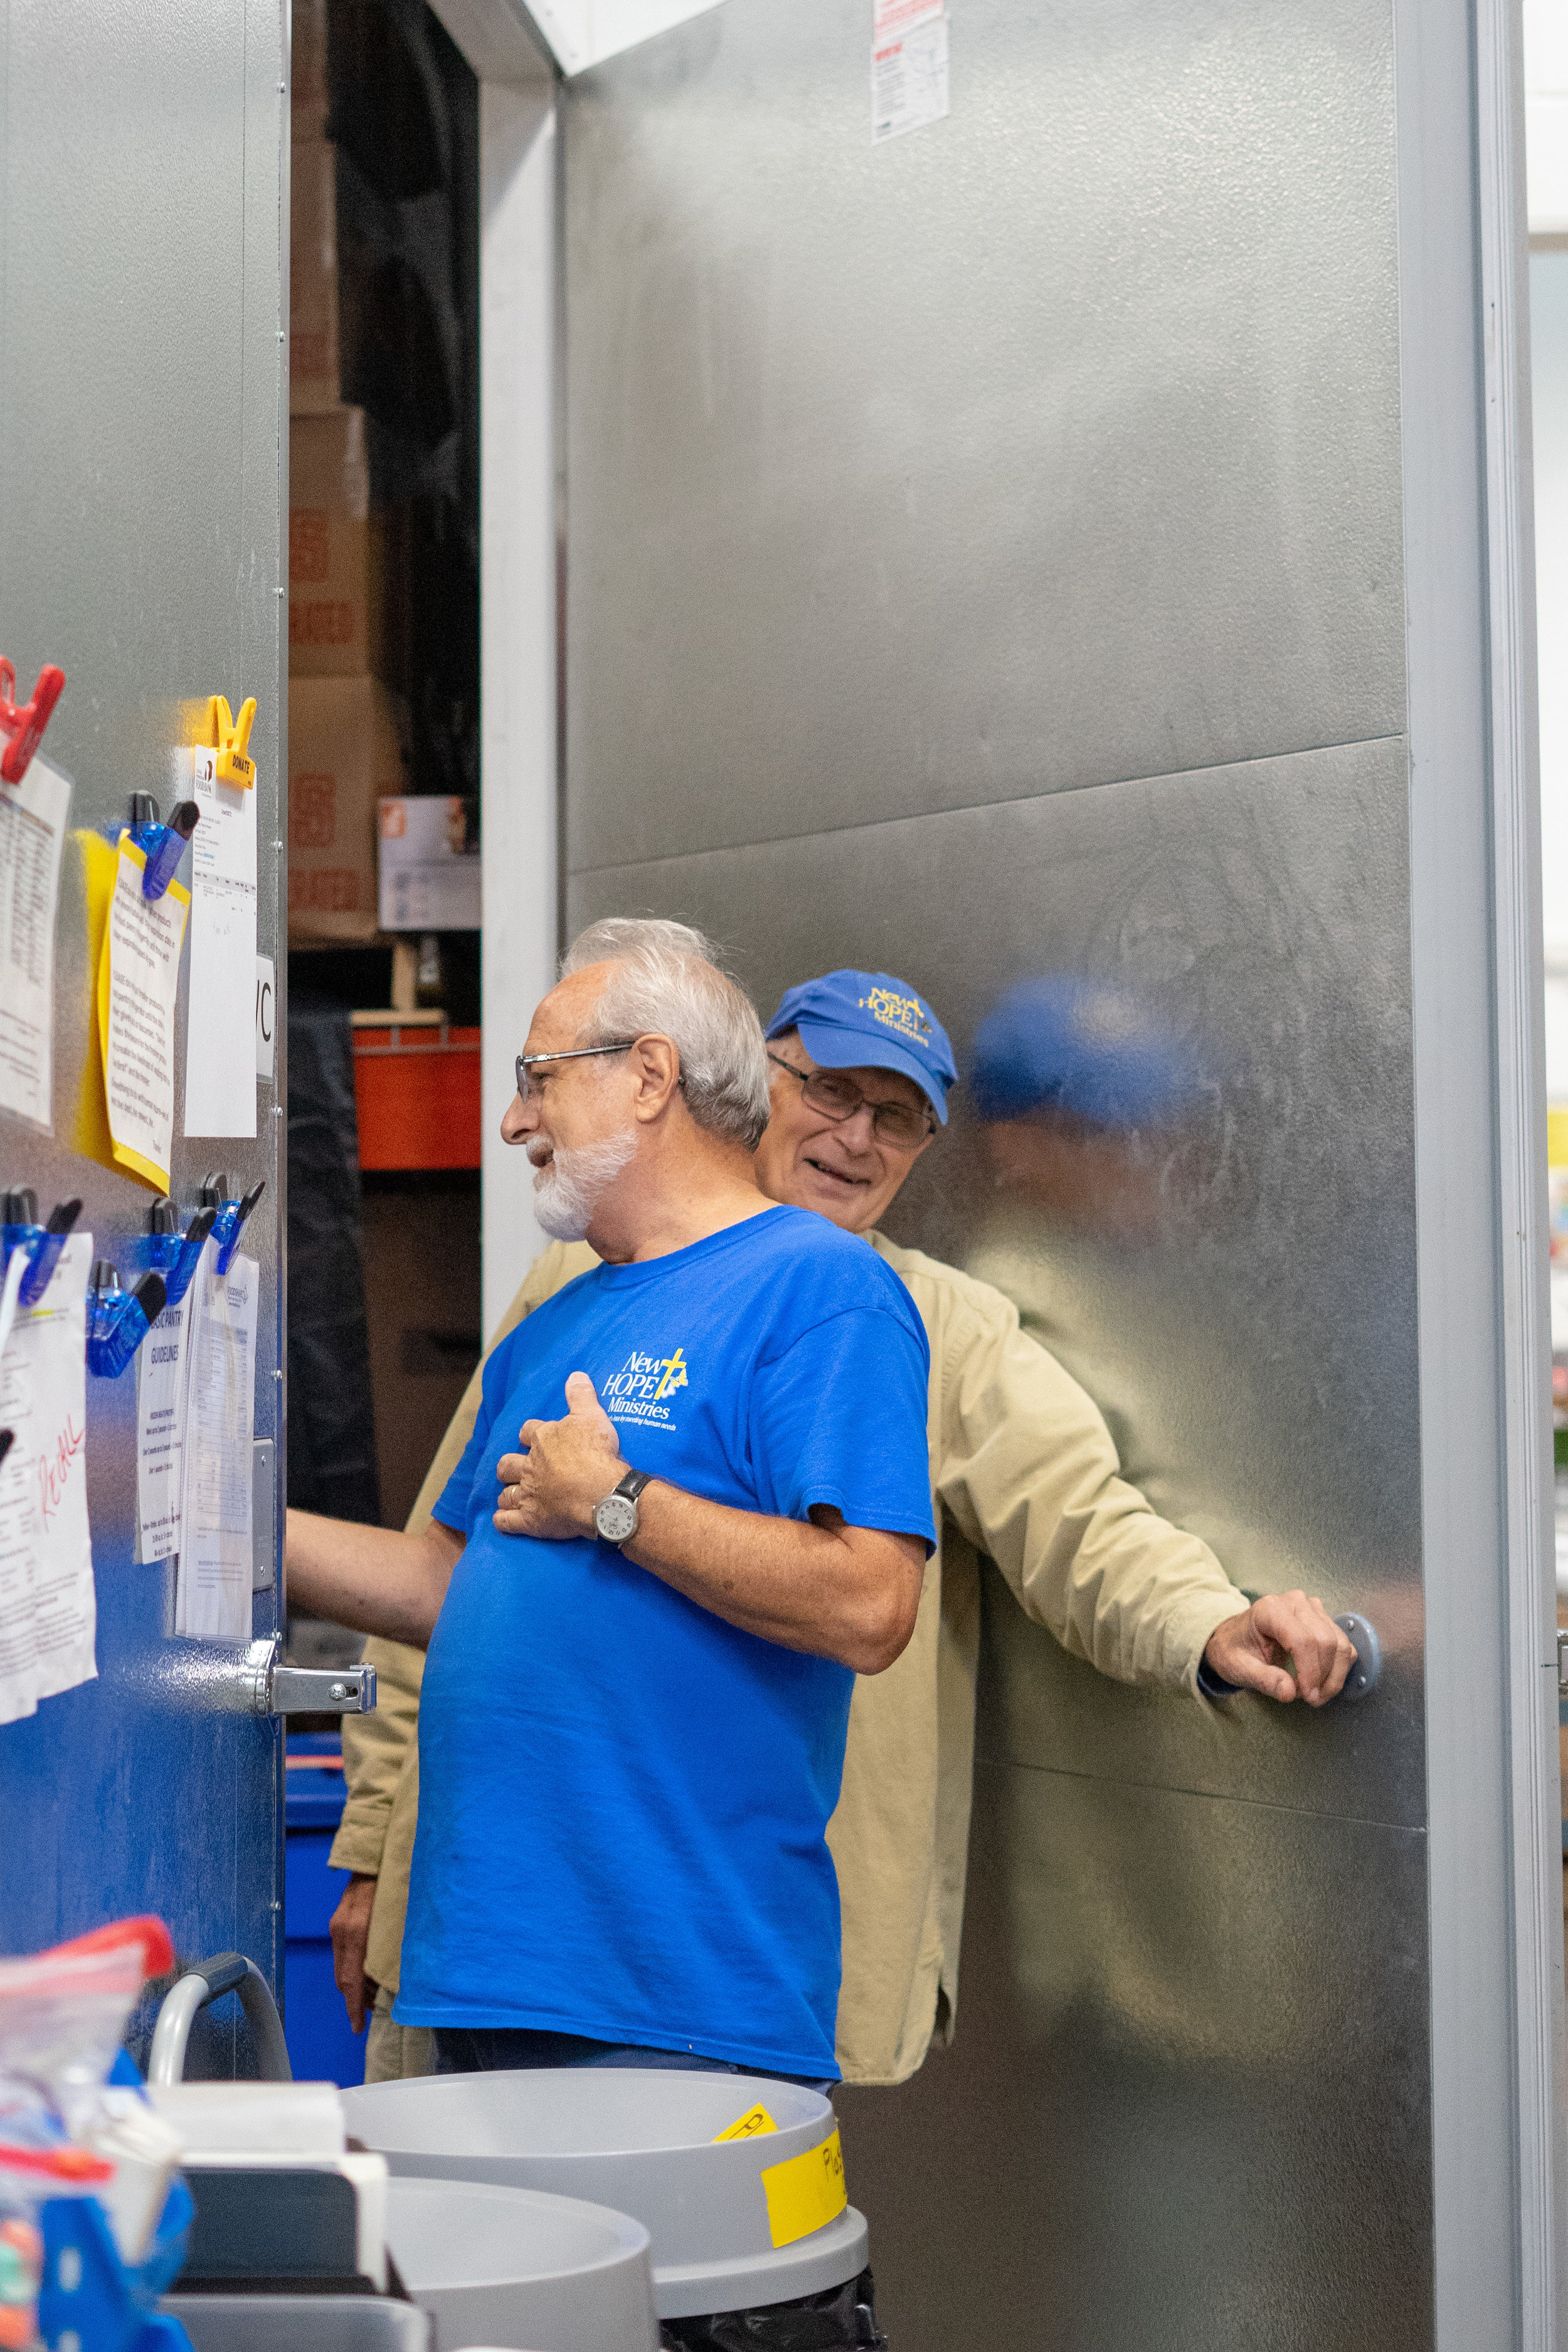 Volunteers Dave (closest to camera) and Dick share a joke while volunteering at the food pantry. The pair has been working at the pantry for many years and have become friends with many of the volunteers and guests that come in to use the organization's services.